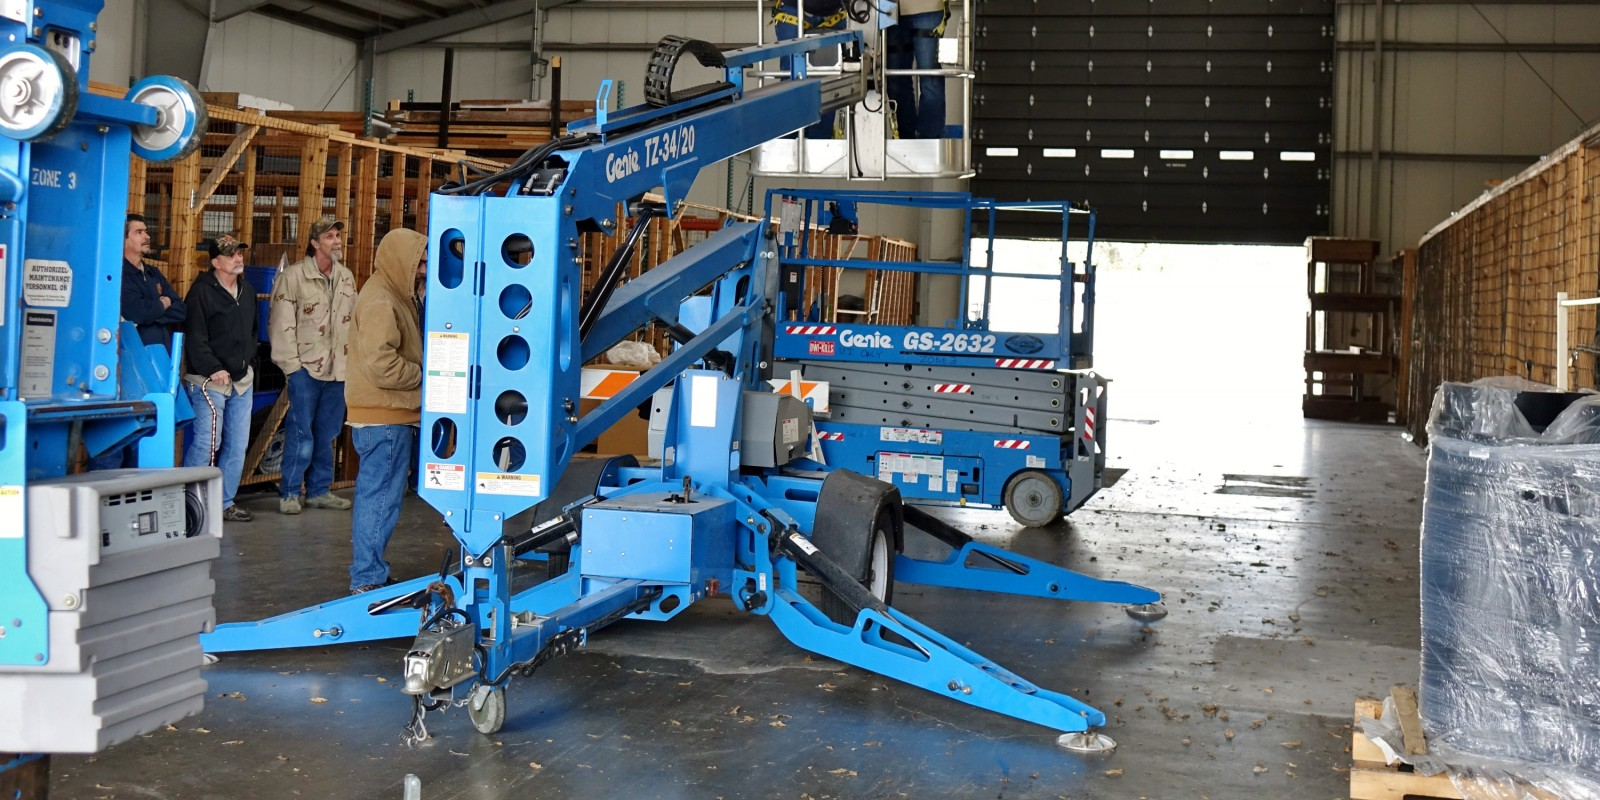 employees operating and observing aerial lift in use in garage